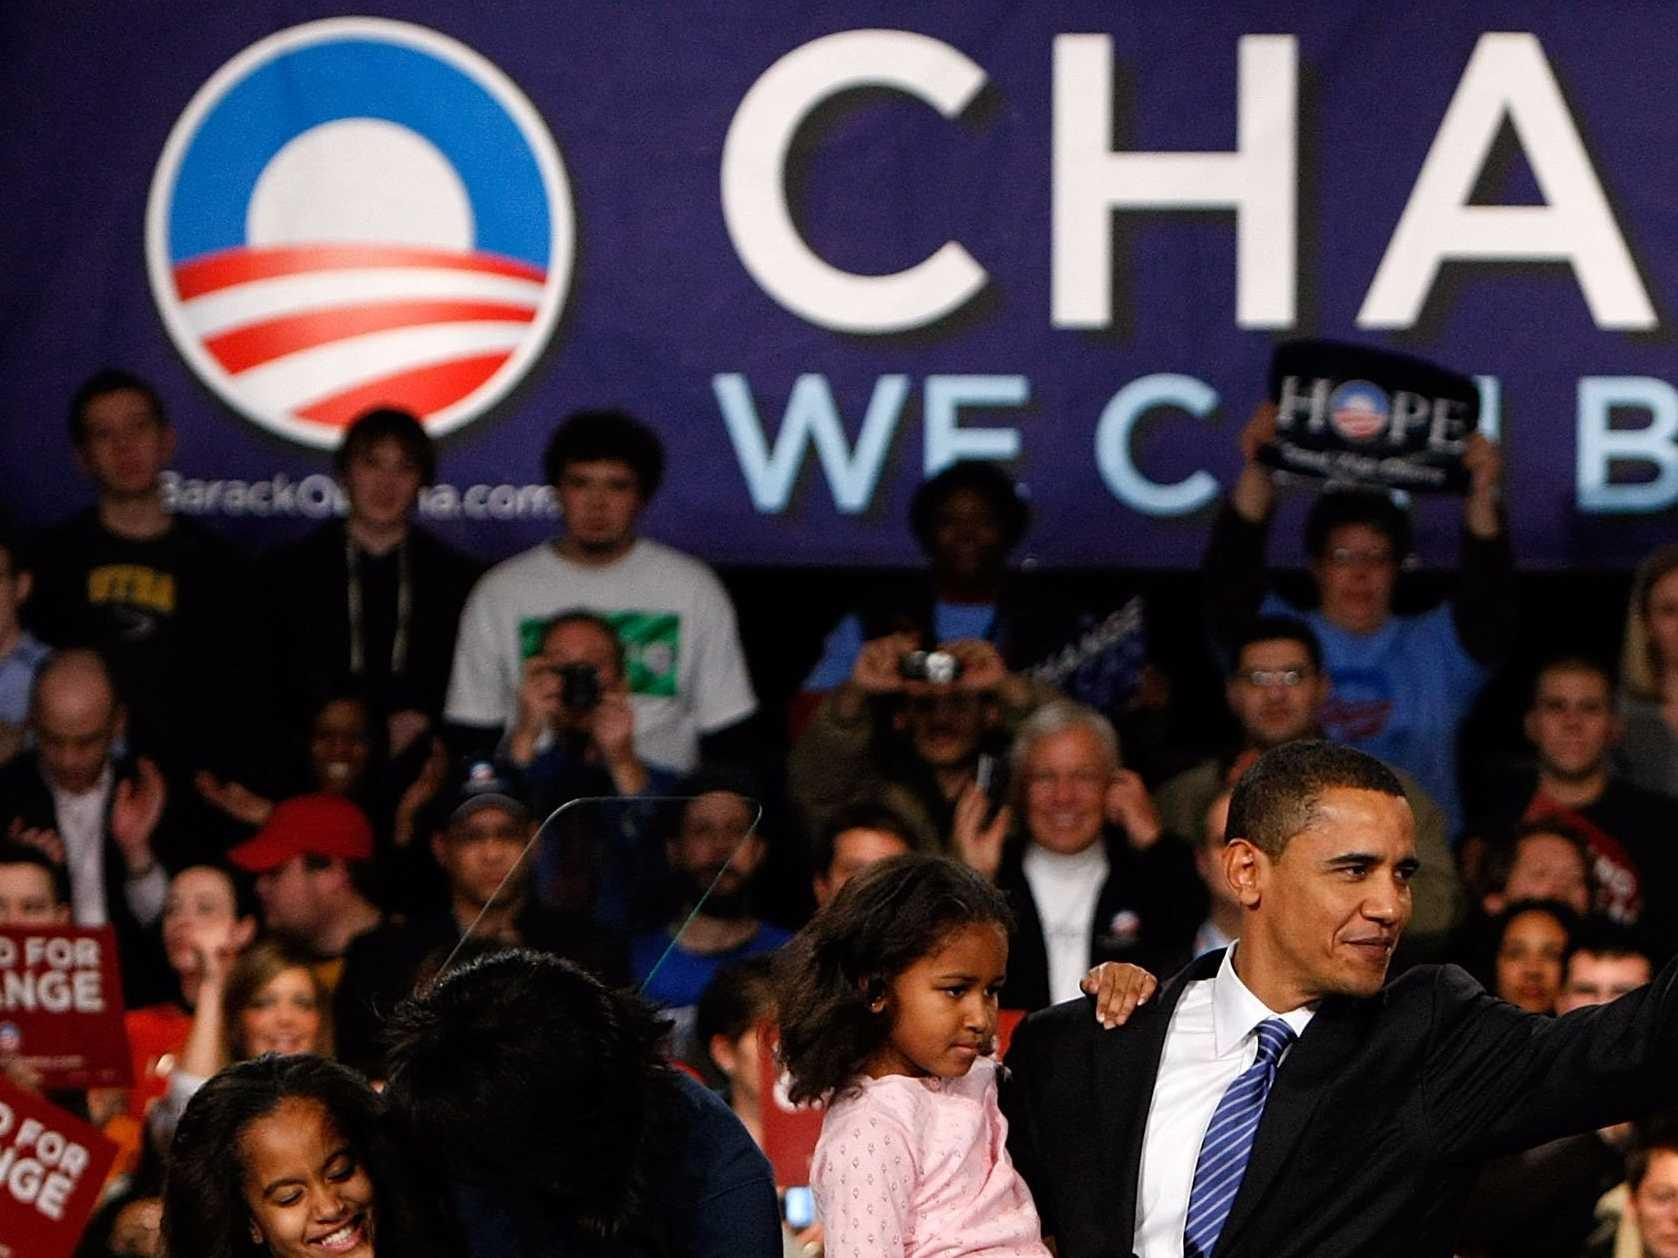 The man who designed Obama's 'O' doesn't like the 2016 campaign logos